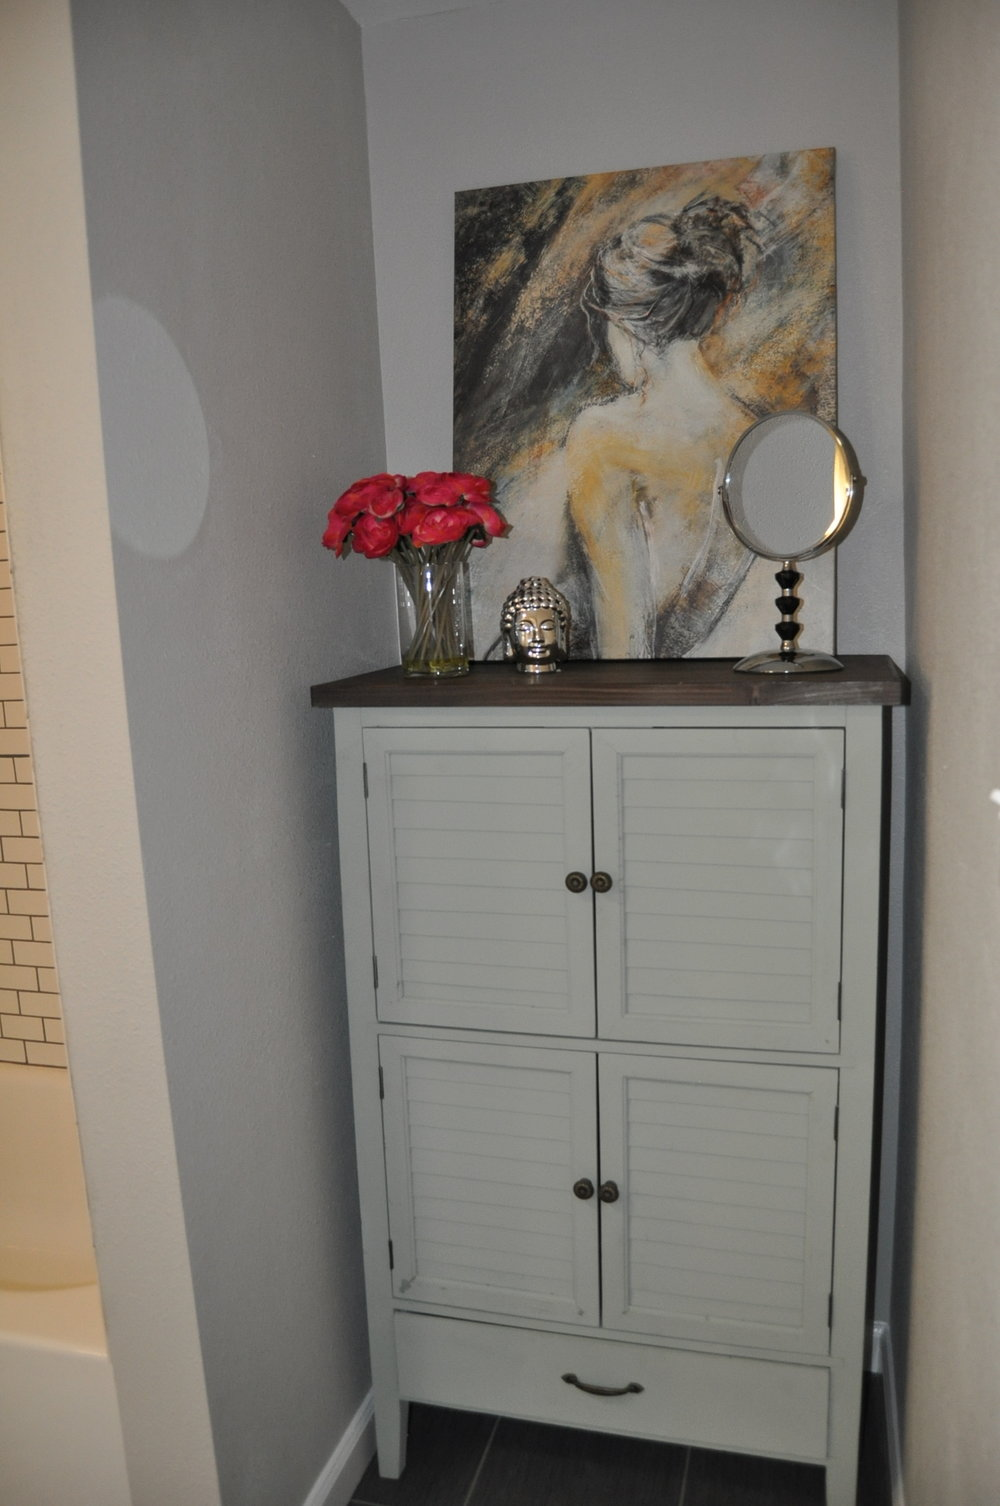 This storage unit from At Home fit perfectly in the bathroom nook